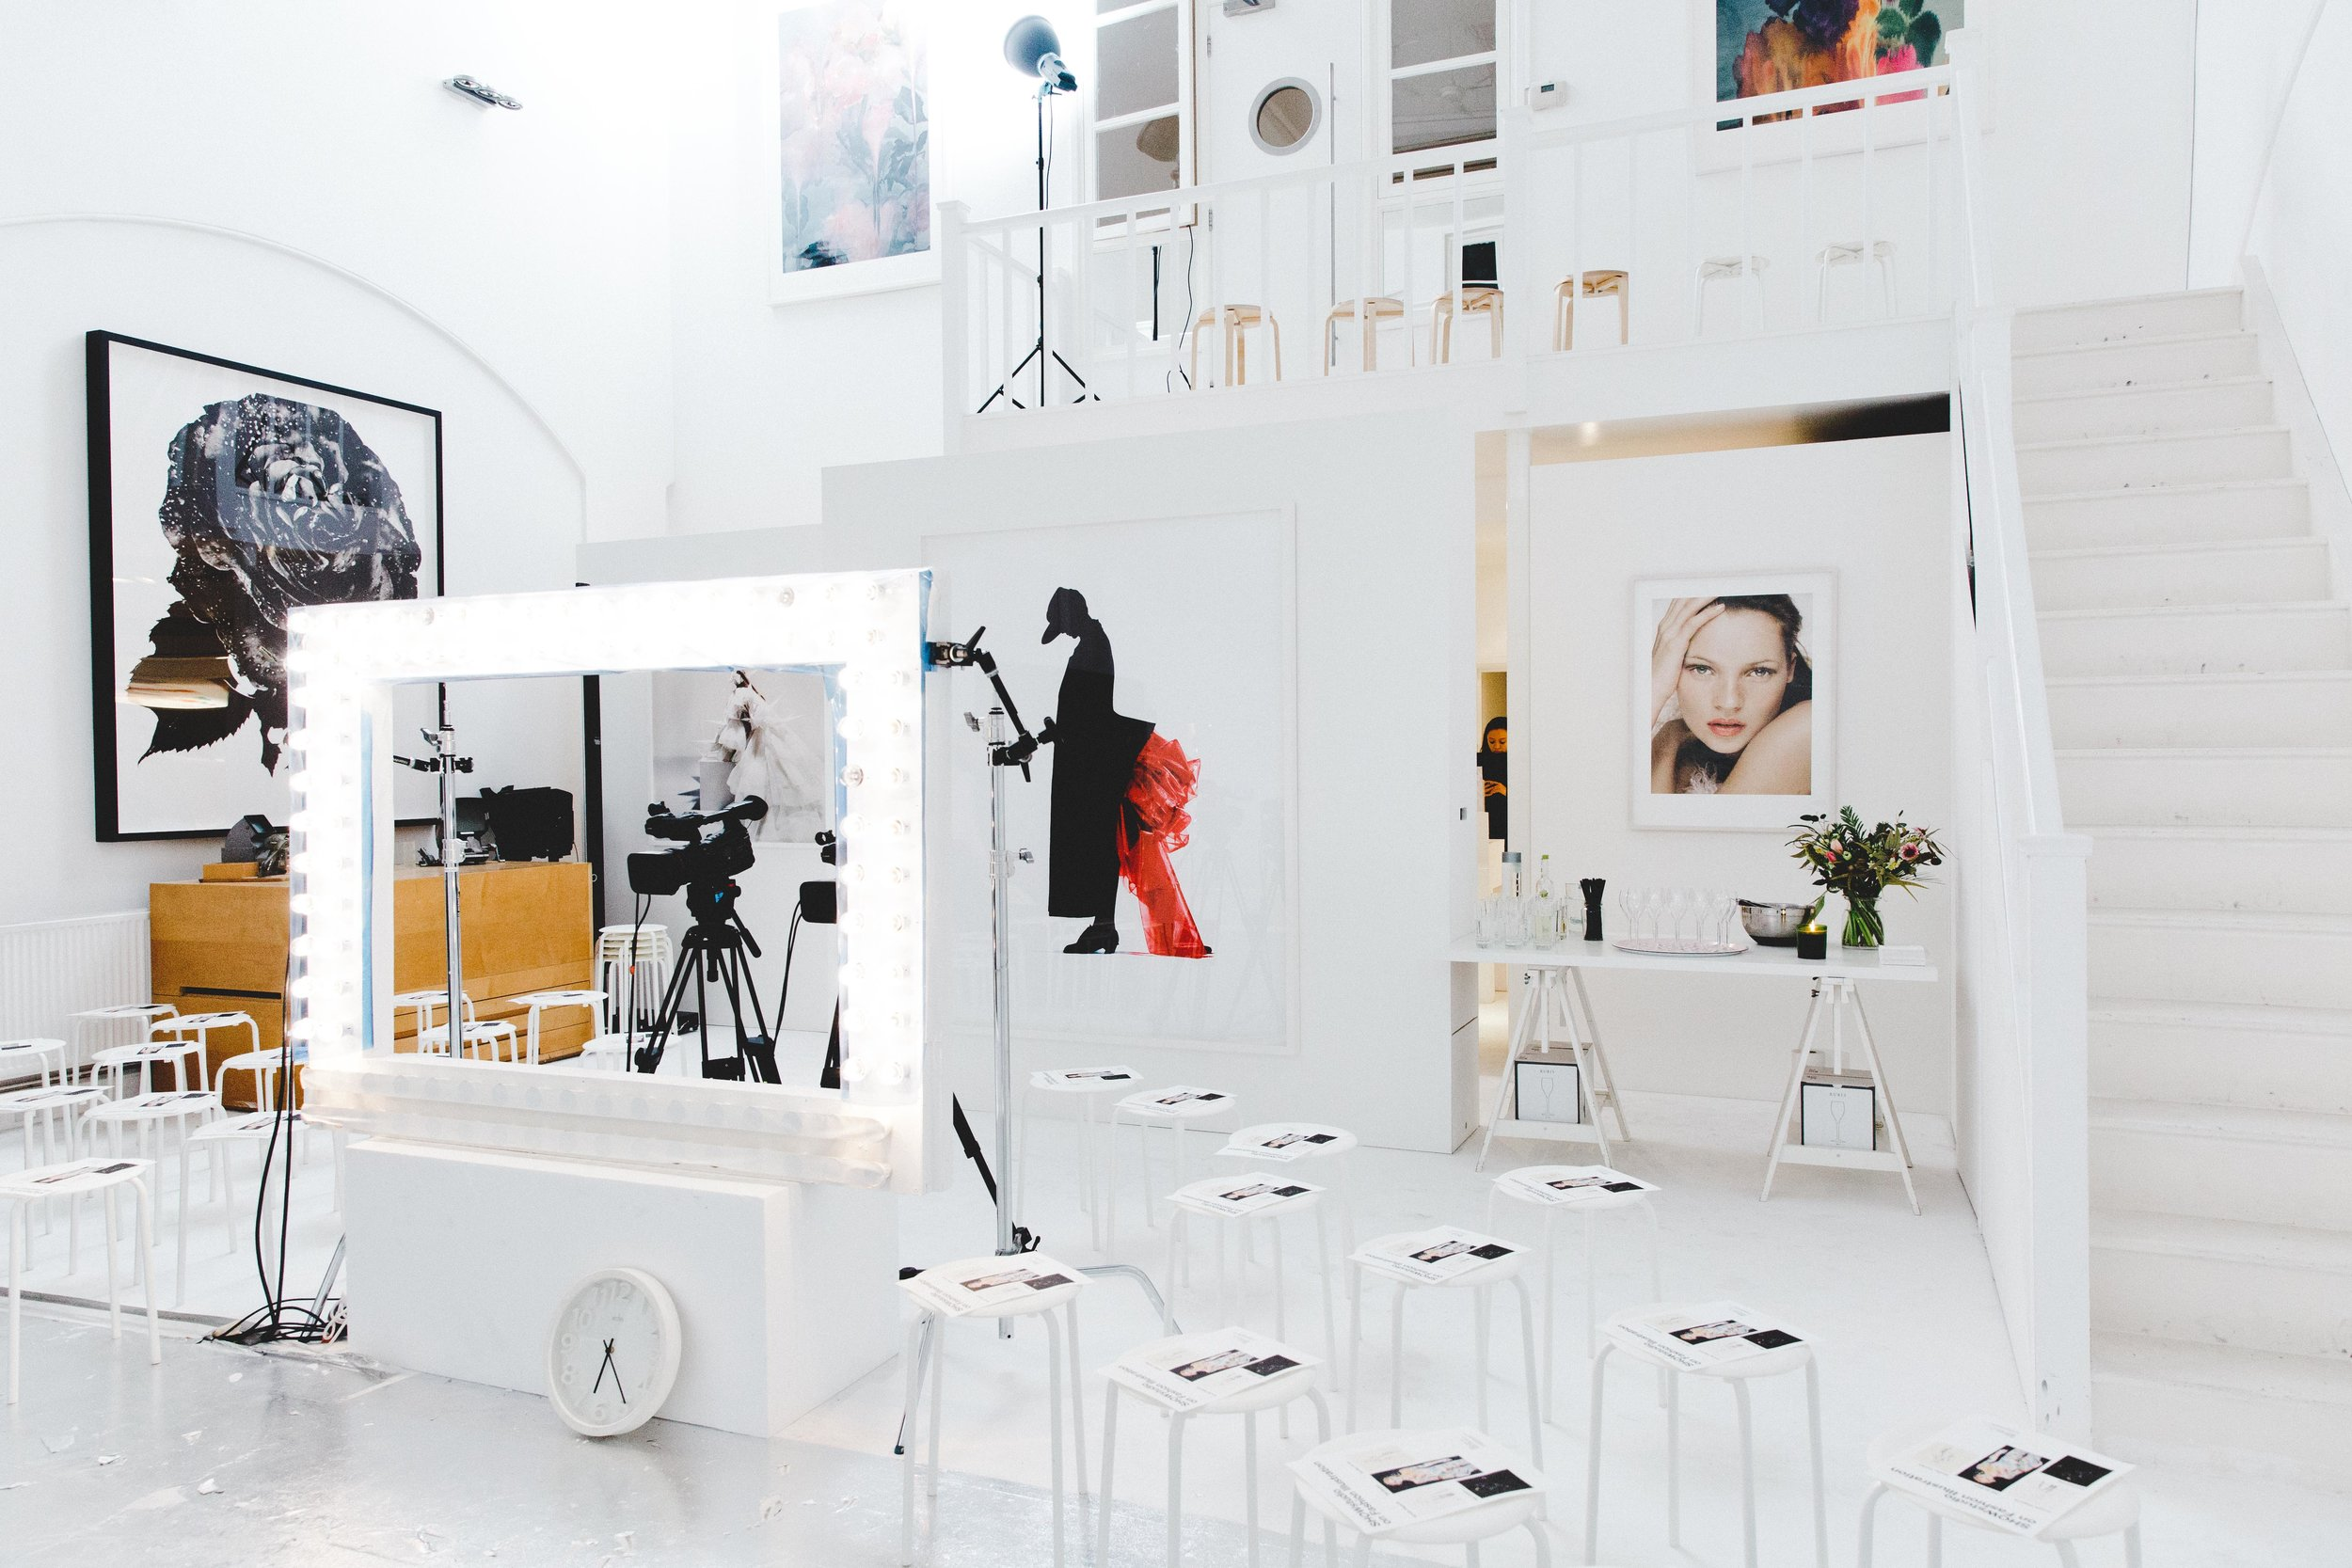 Panel discussion on fashion illustration hosted by Nick Knight in his studio. Photography by Dunja Opalko.